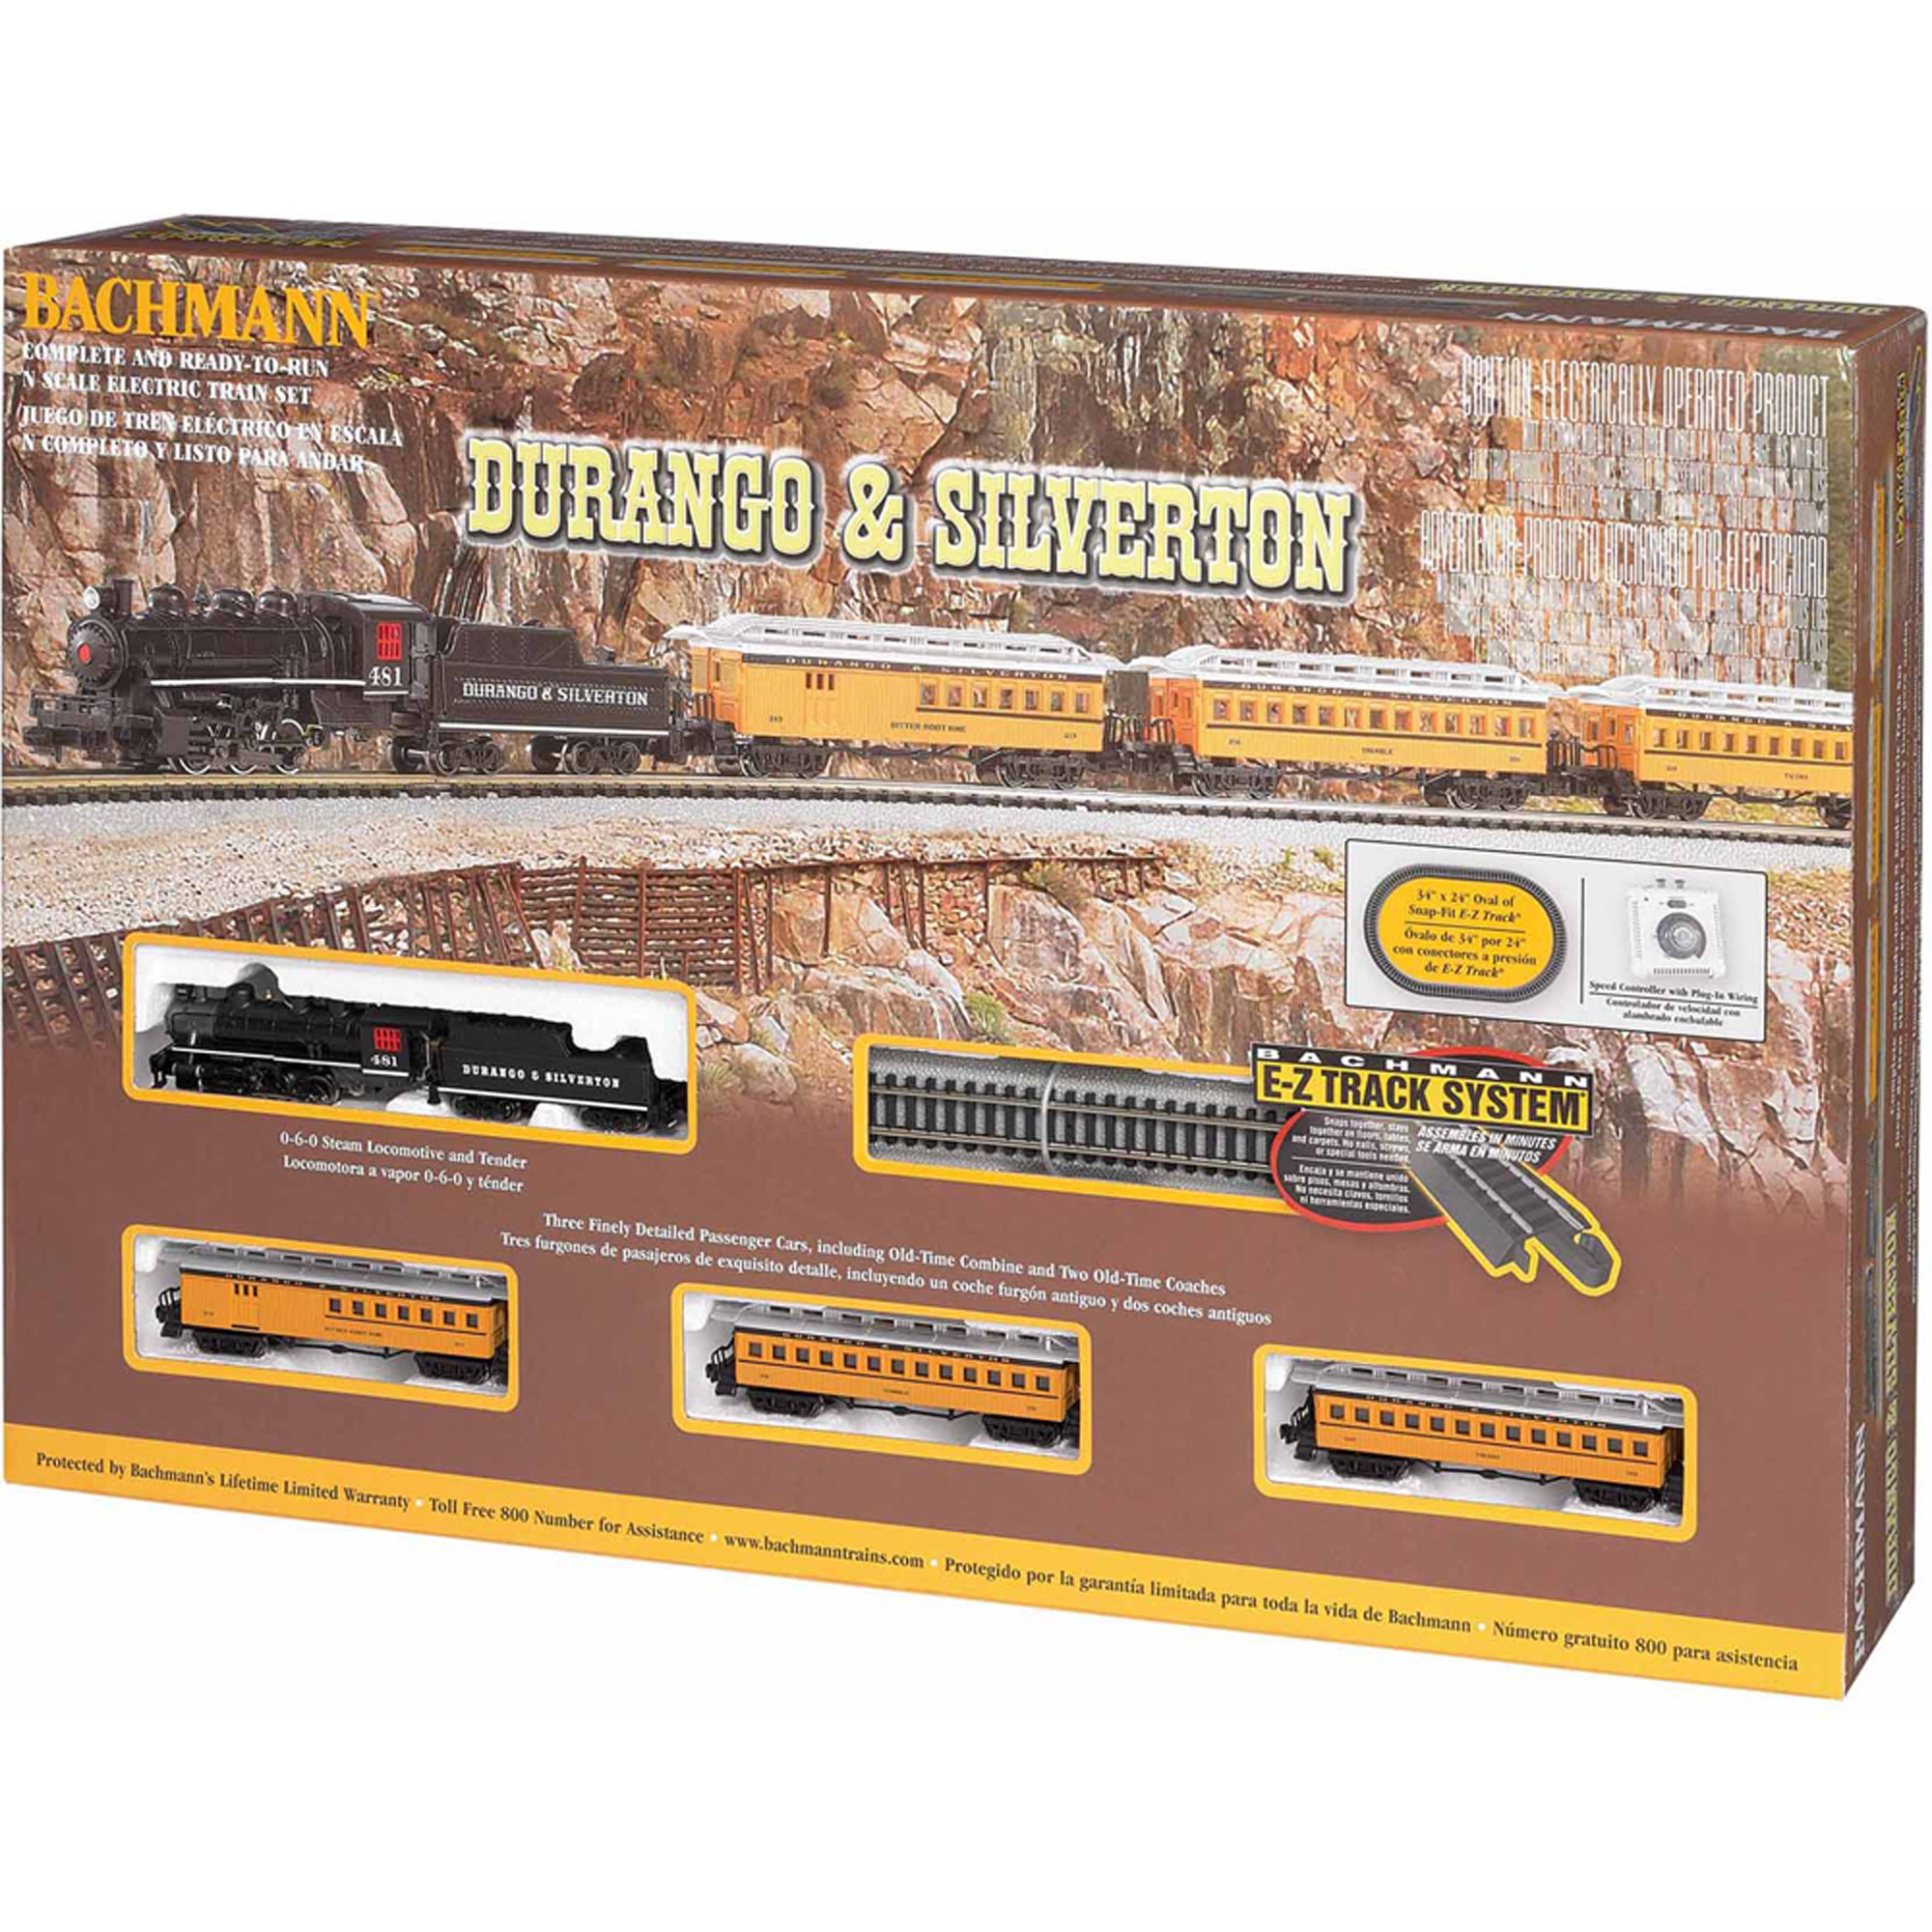 Bachmann Trains Durango and Silverton, N Scale Ready-To-Run Electric Train Set